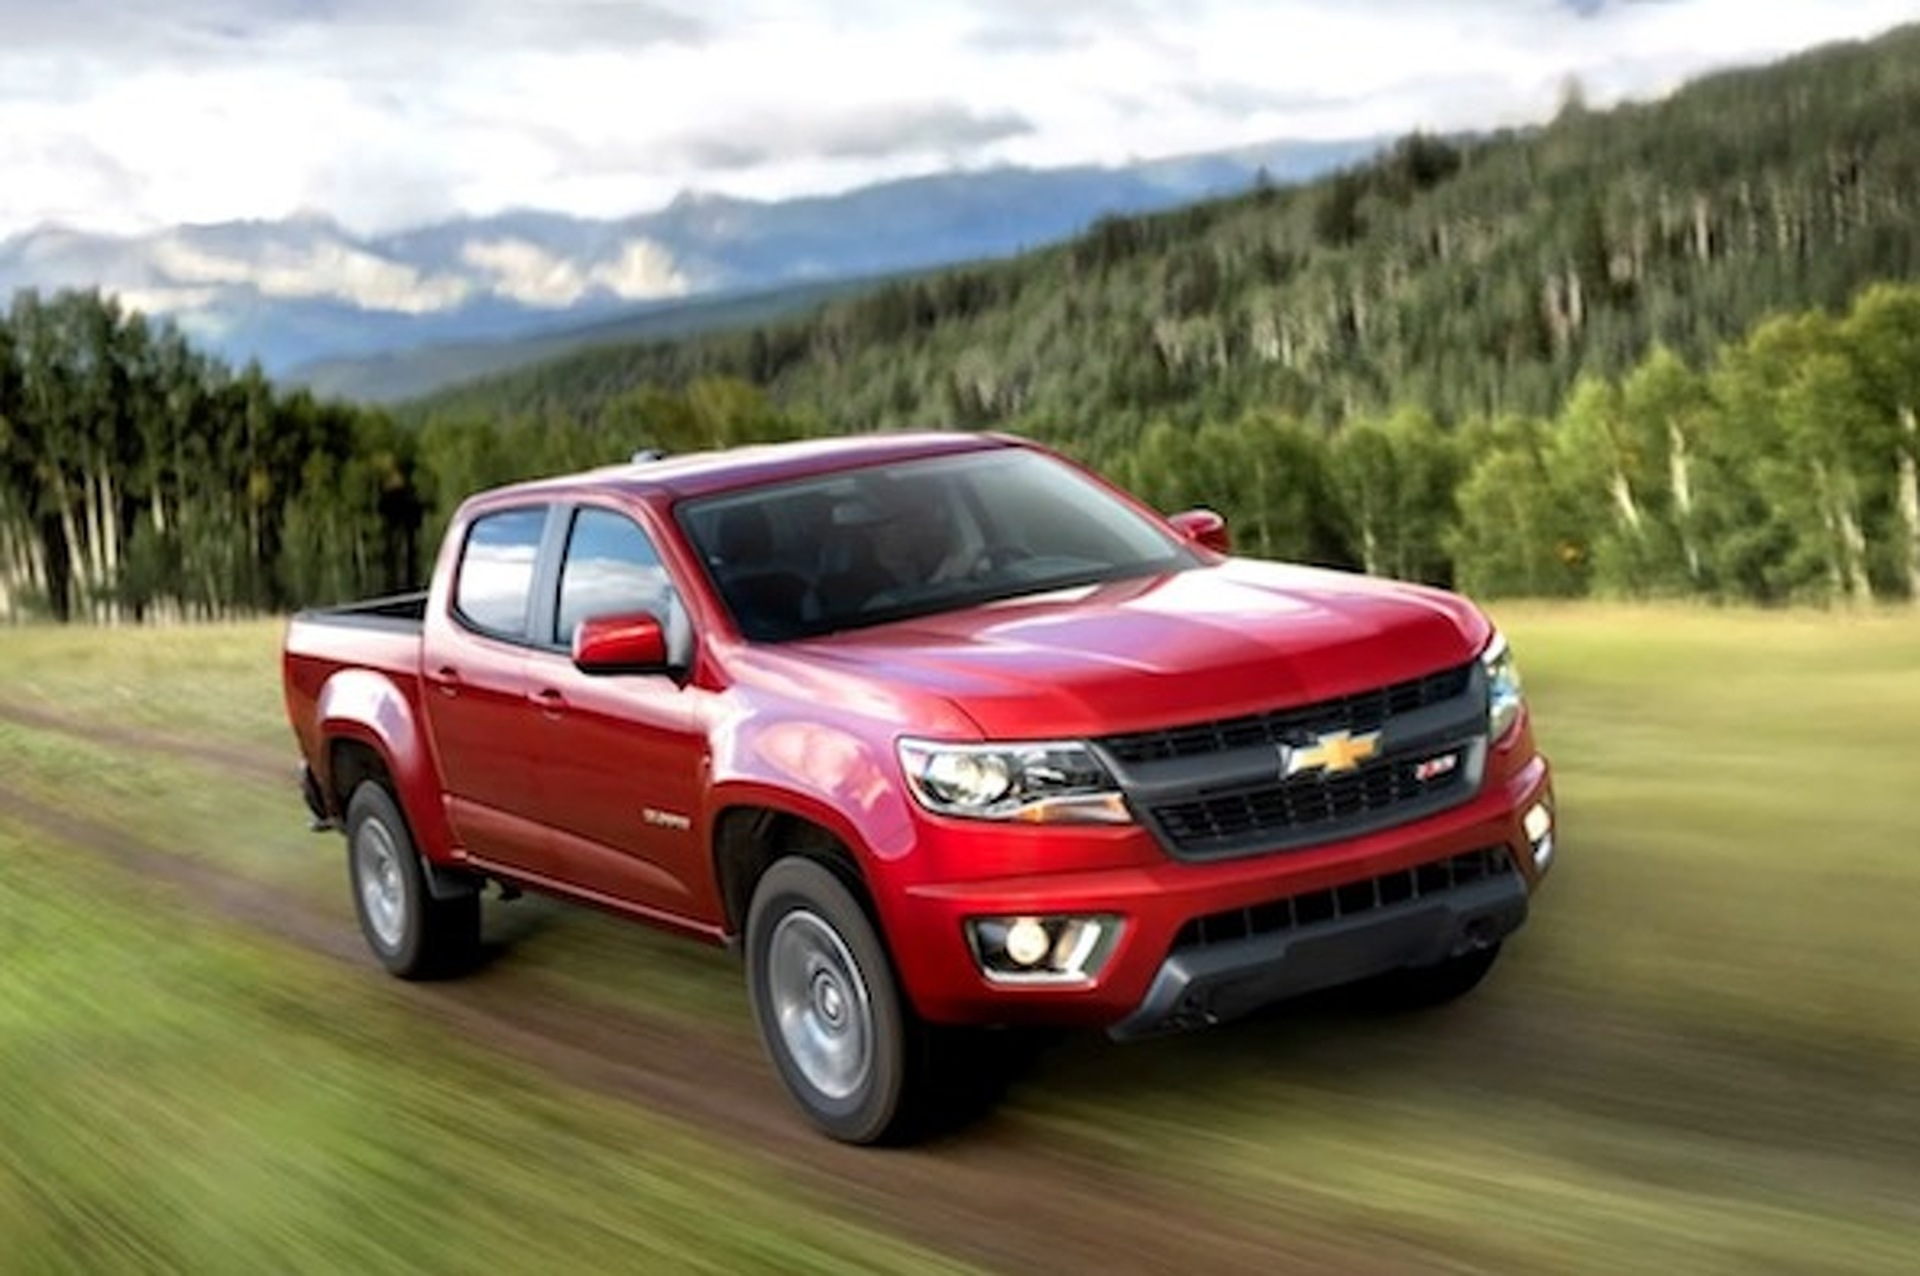 2015 Chevrolet Colorado Revealed